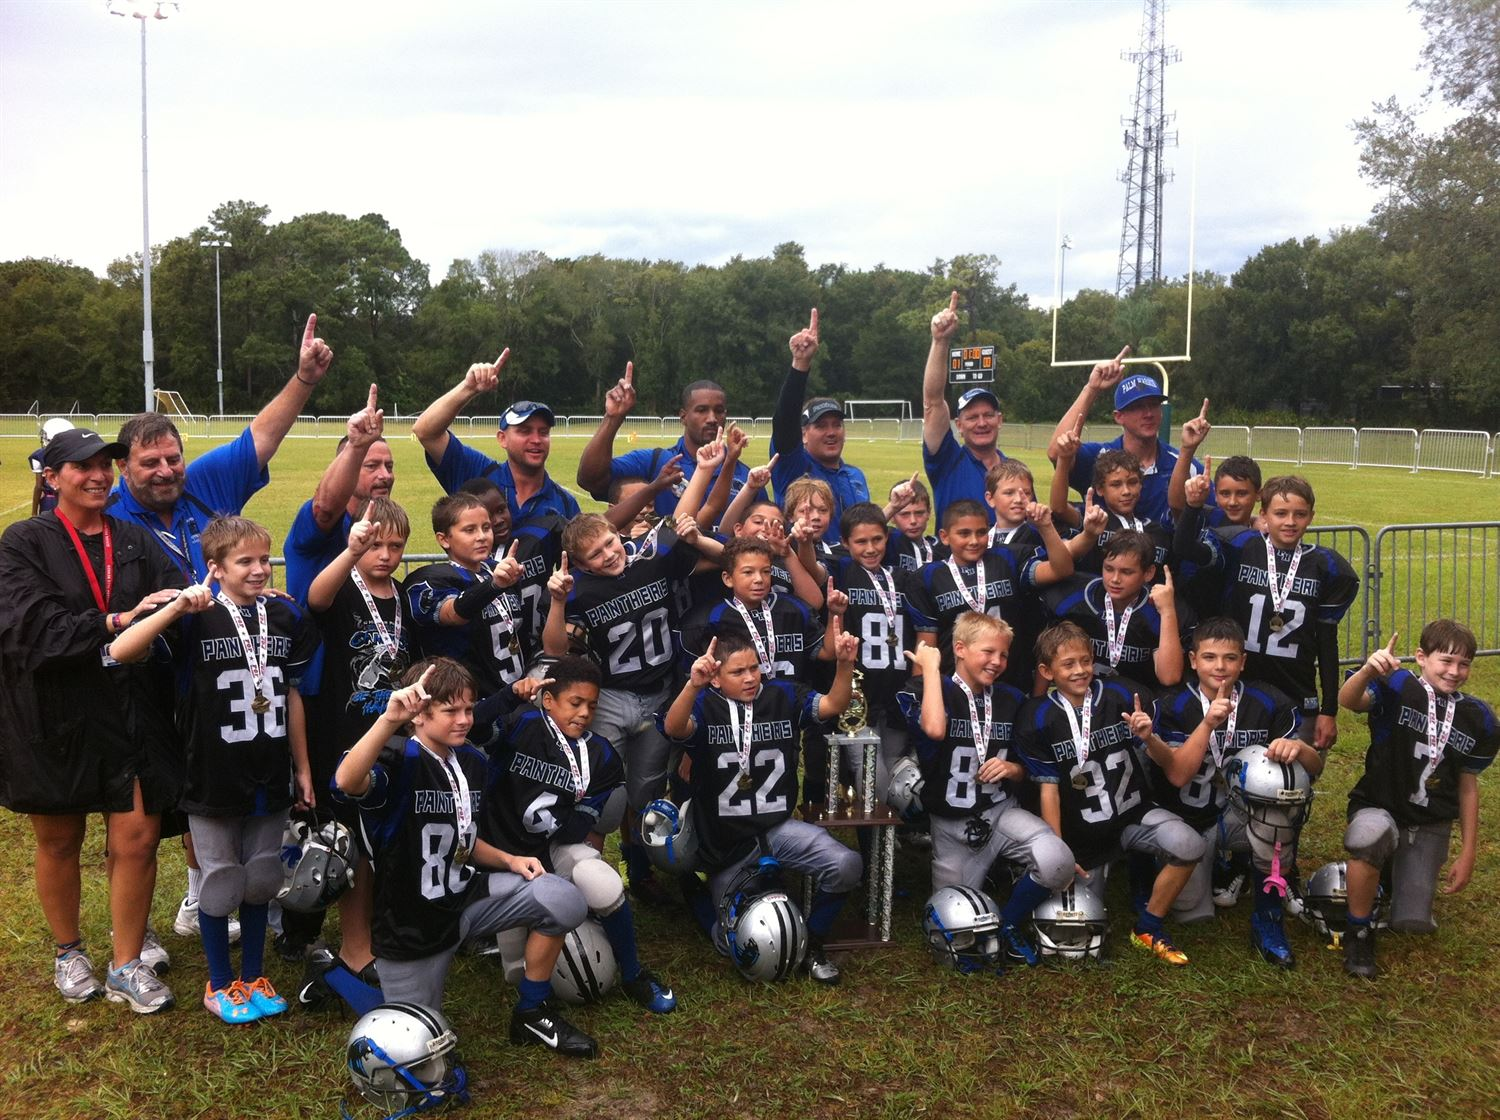 William Demas Youth Teams - Palm Harbor Panthers Unlimited